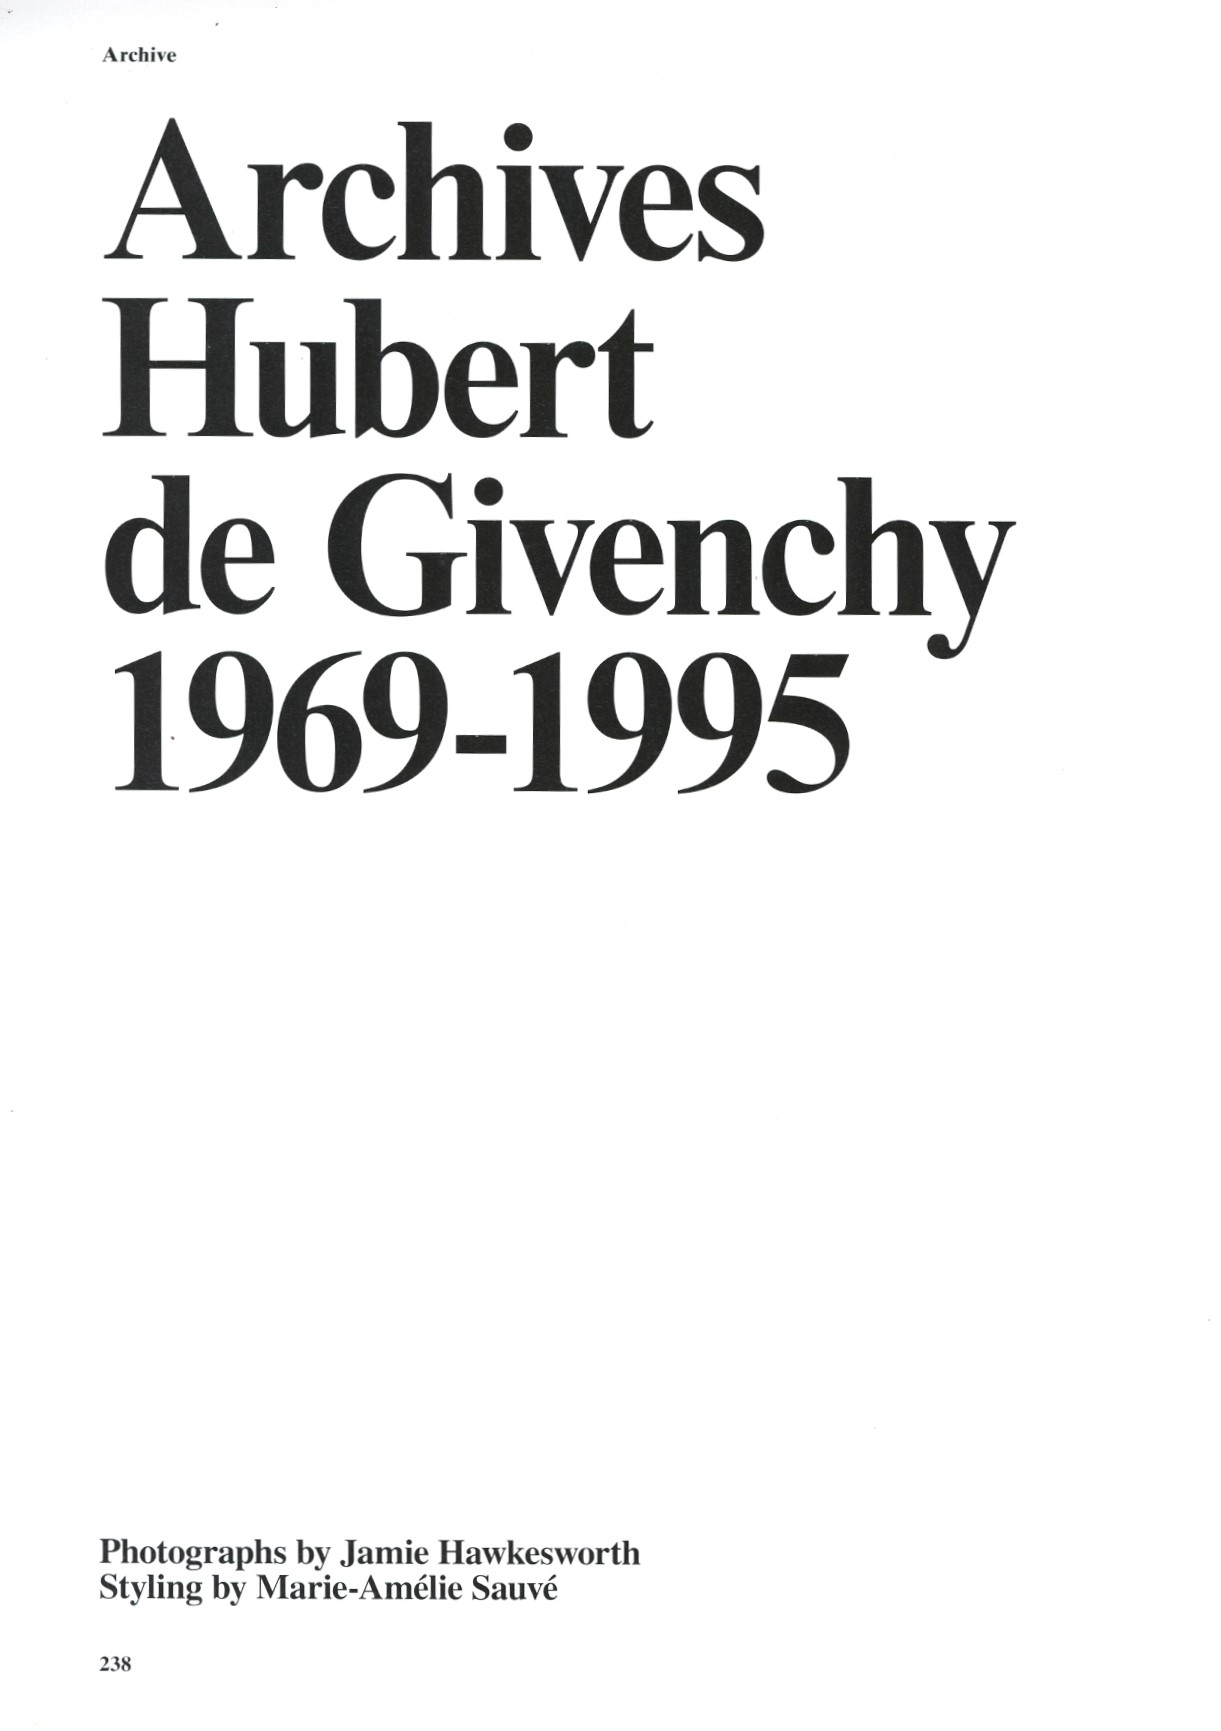 archives hubert de givenchy 1969 1995 photography jamie hawkesworth system issue n6 a w 2015 1